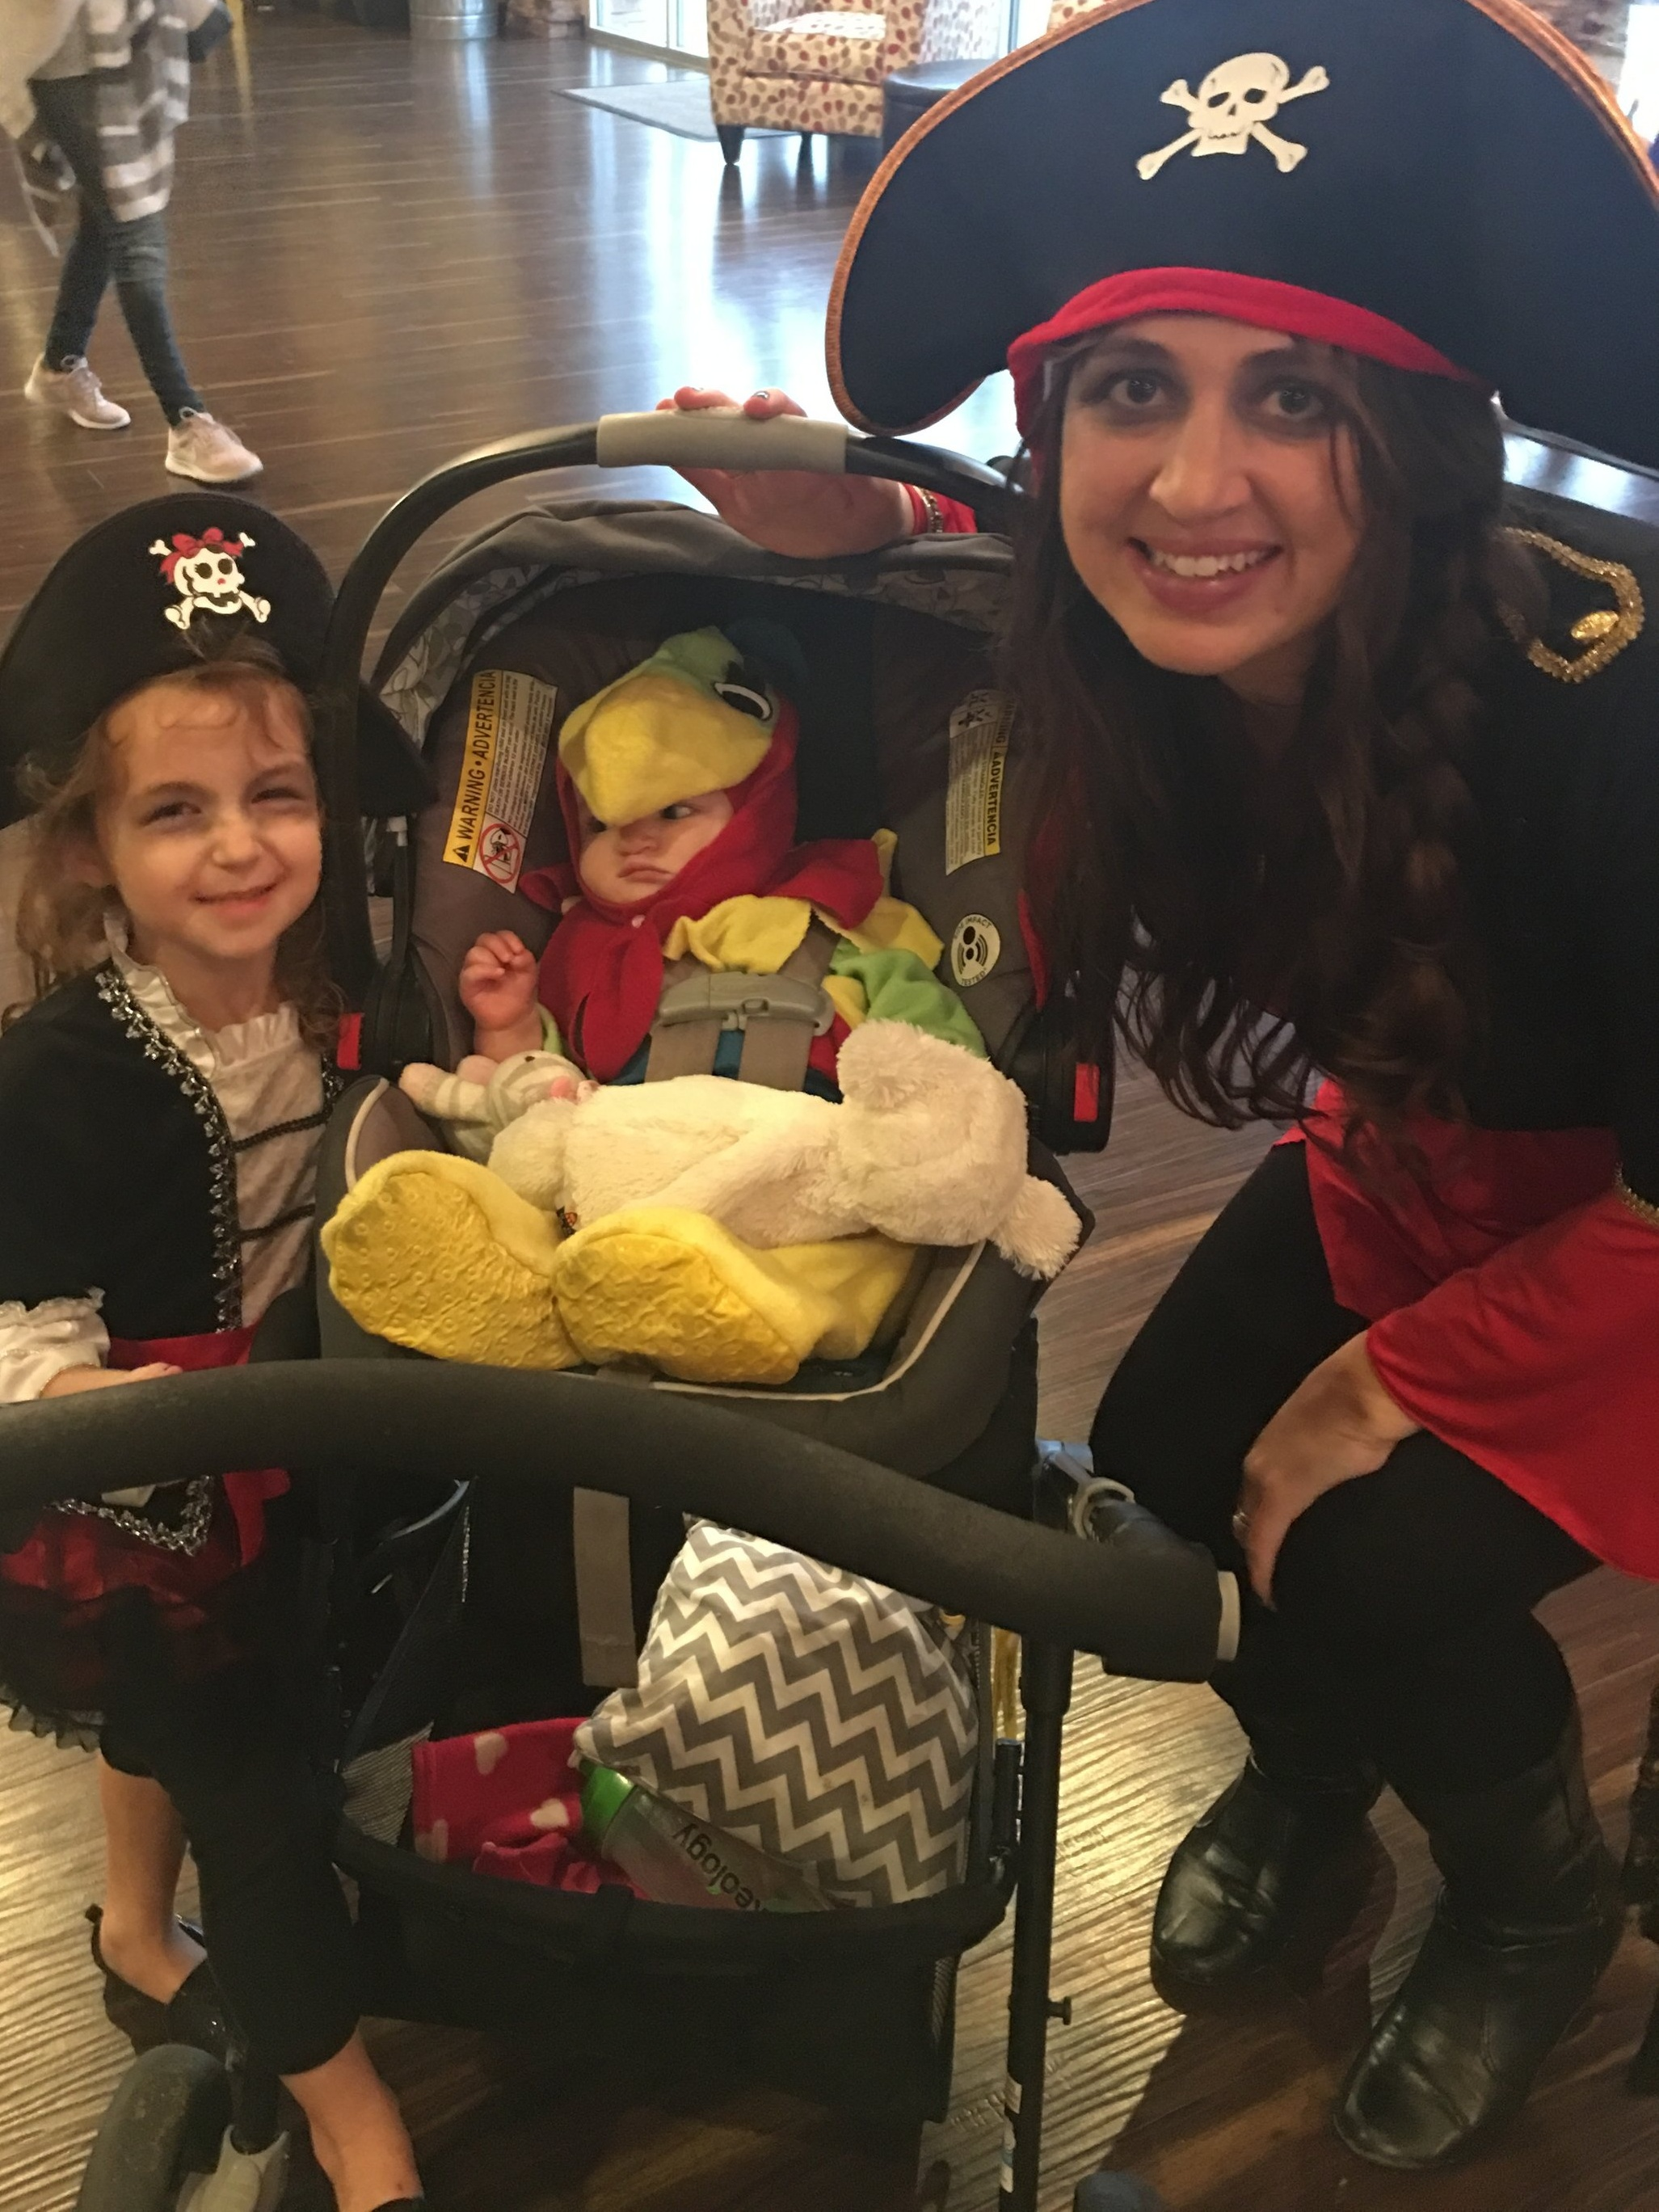 Pirate Halloween costumes sahm toddler and baby